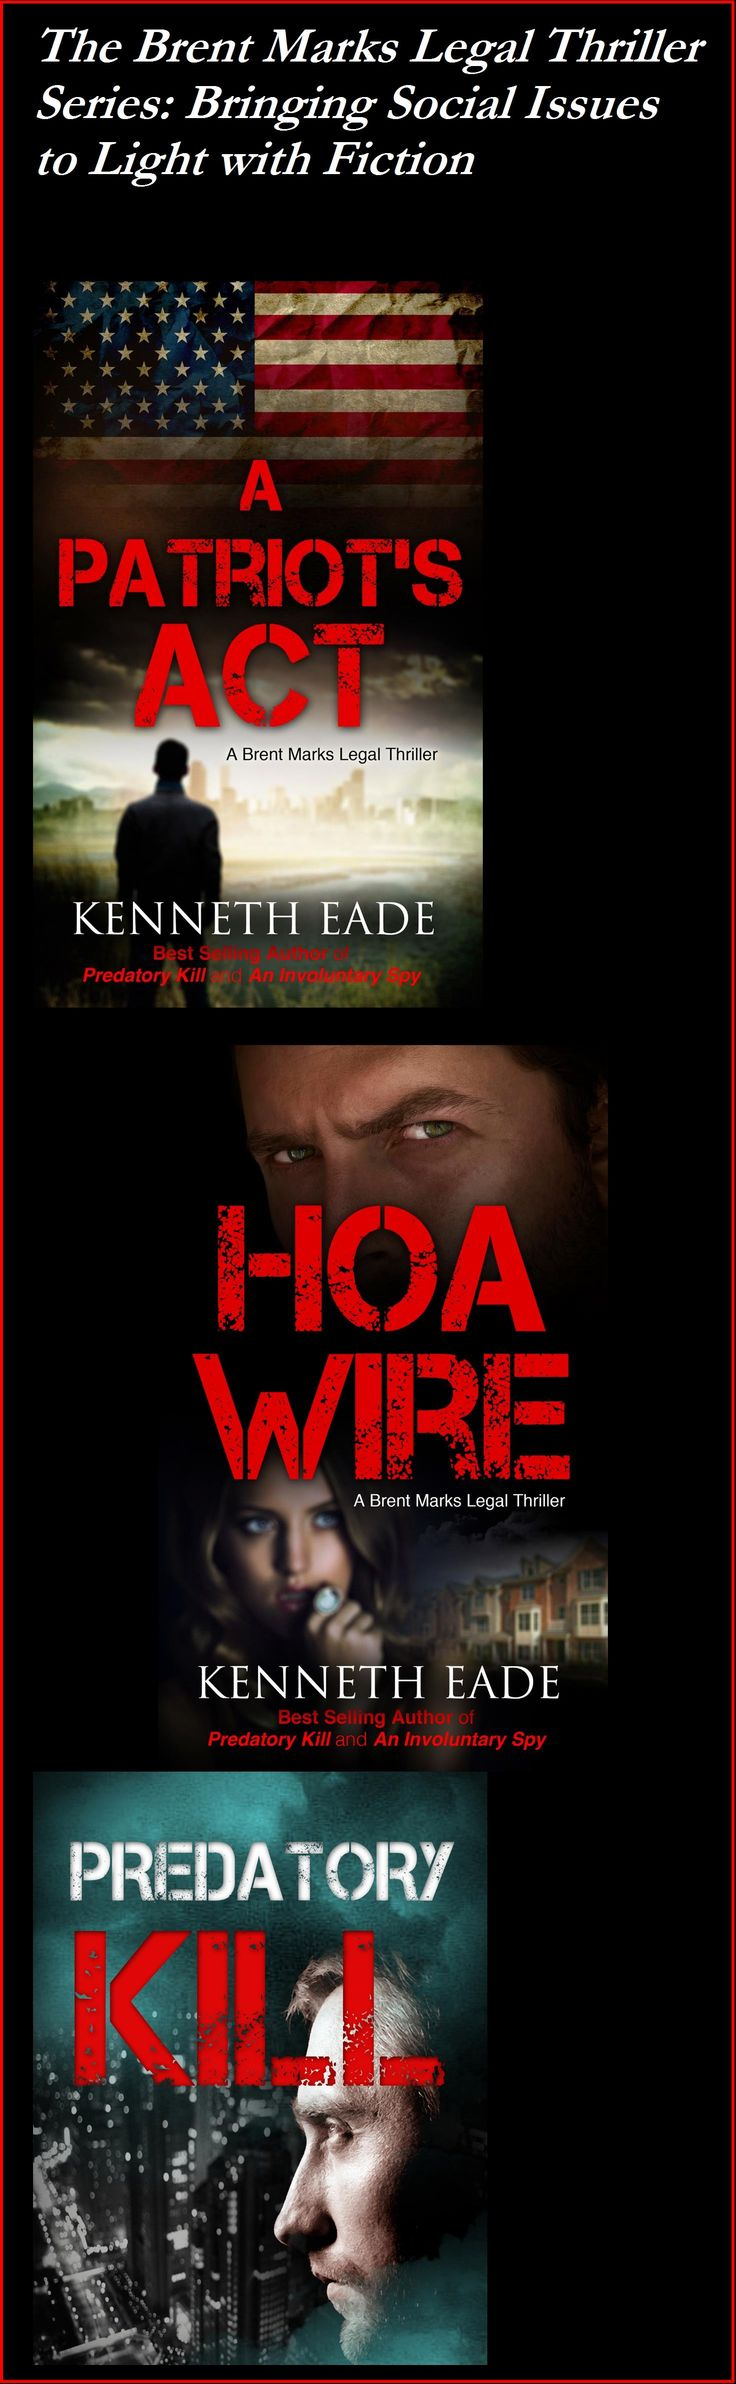 Find This Pin And More On Best Selling Courtroom Drama Books 2015